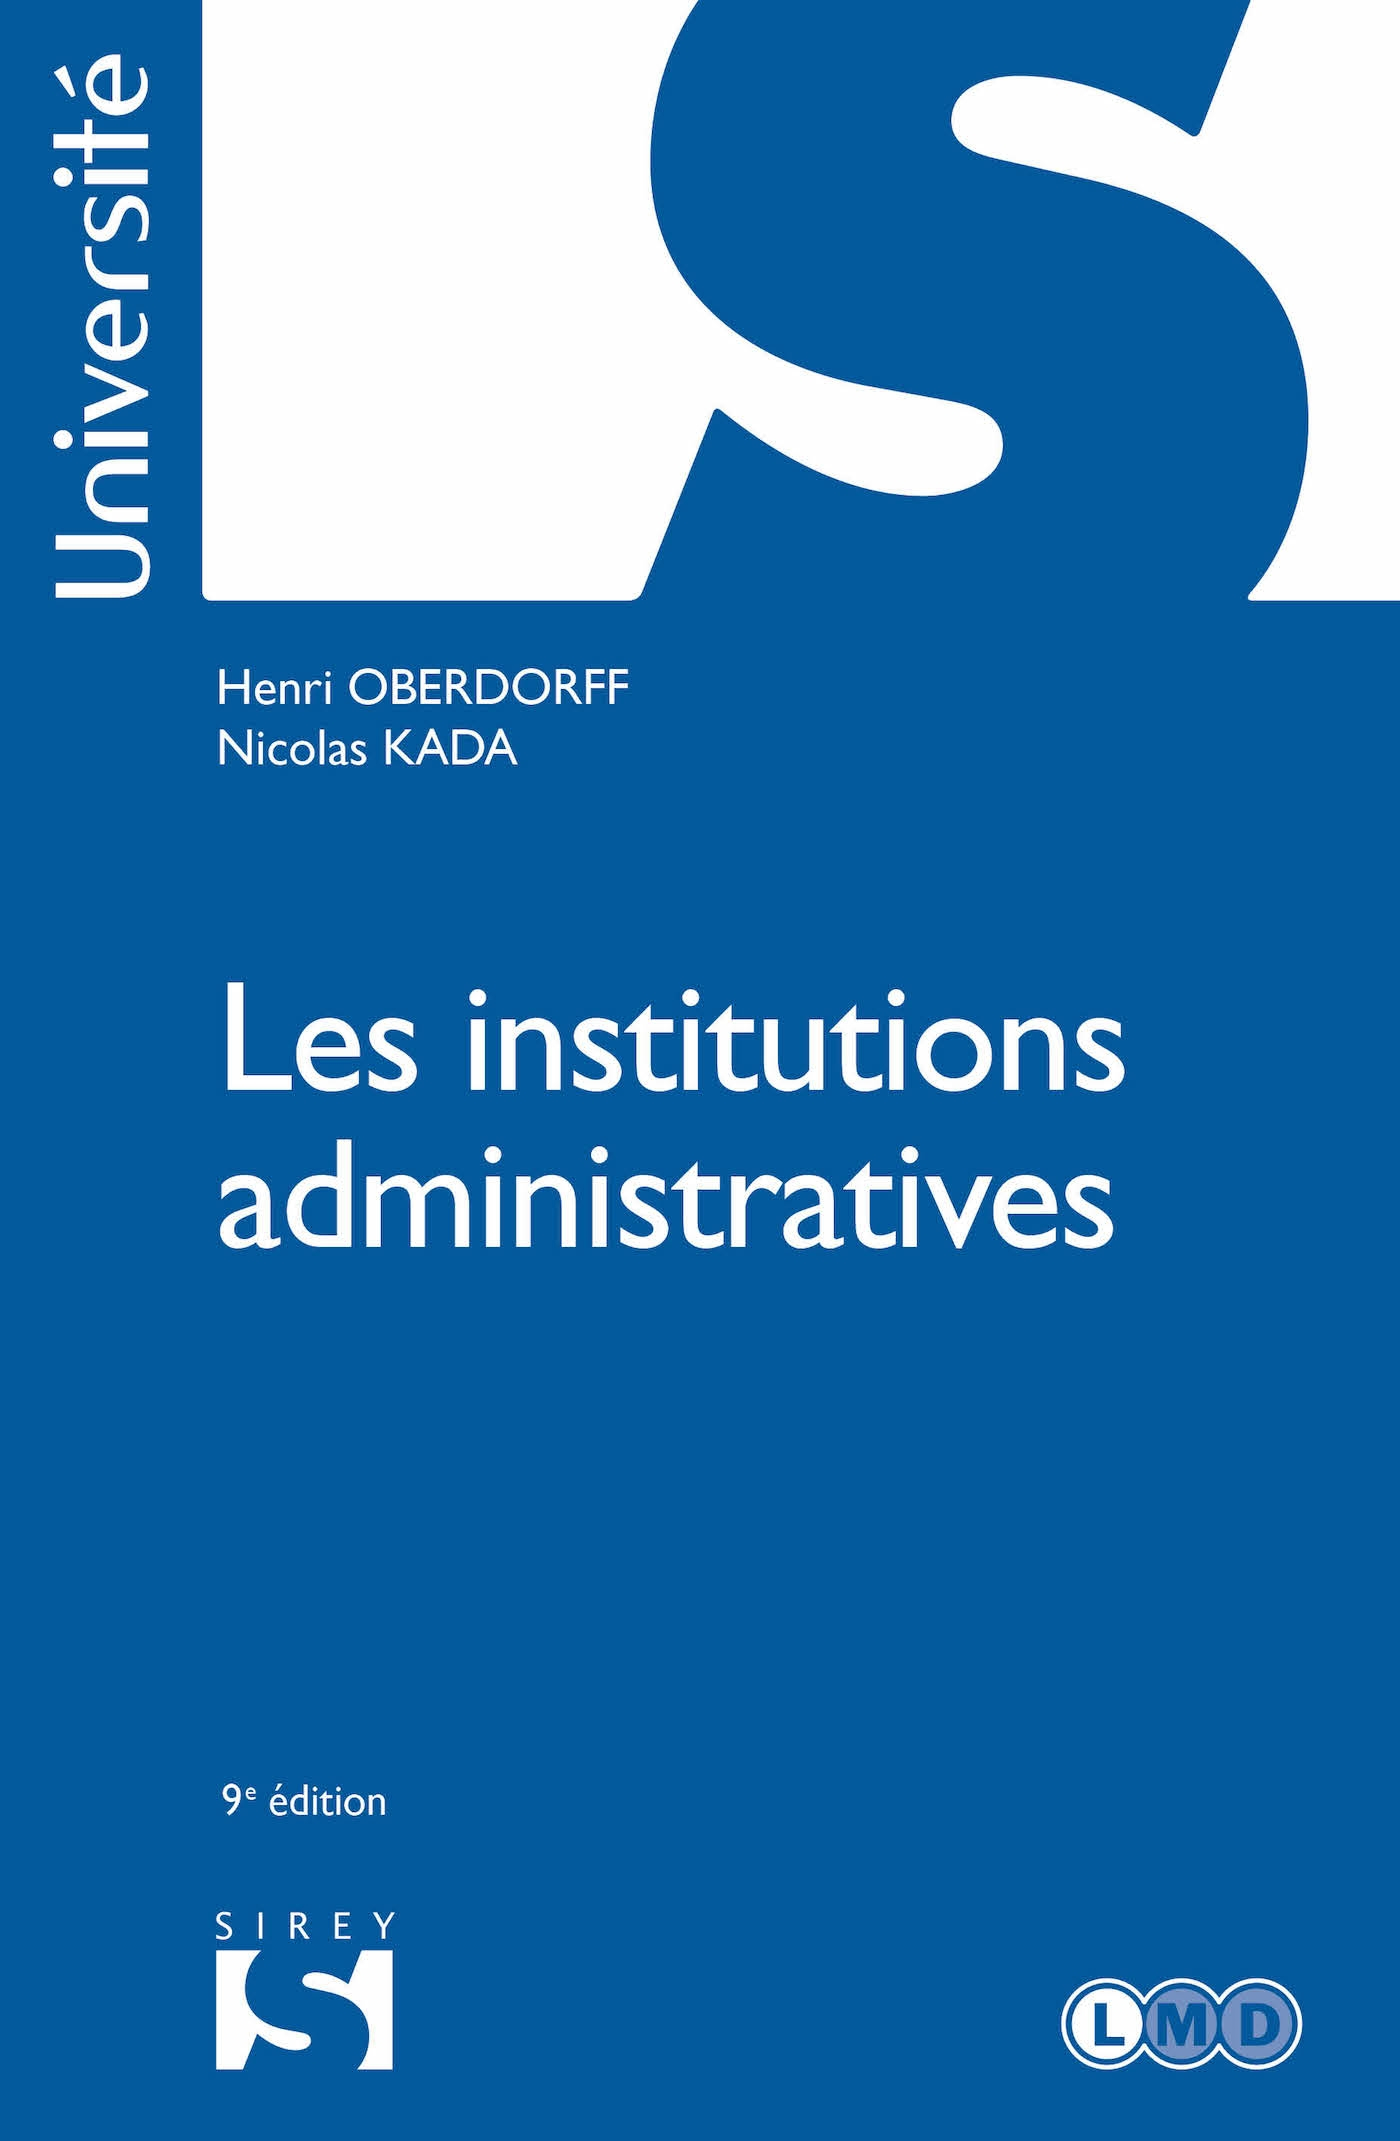 Les institutions administratives - 9e éd.